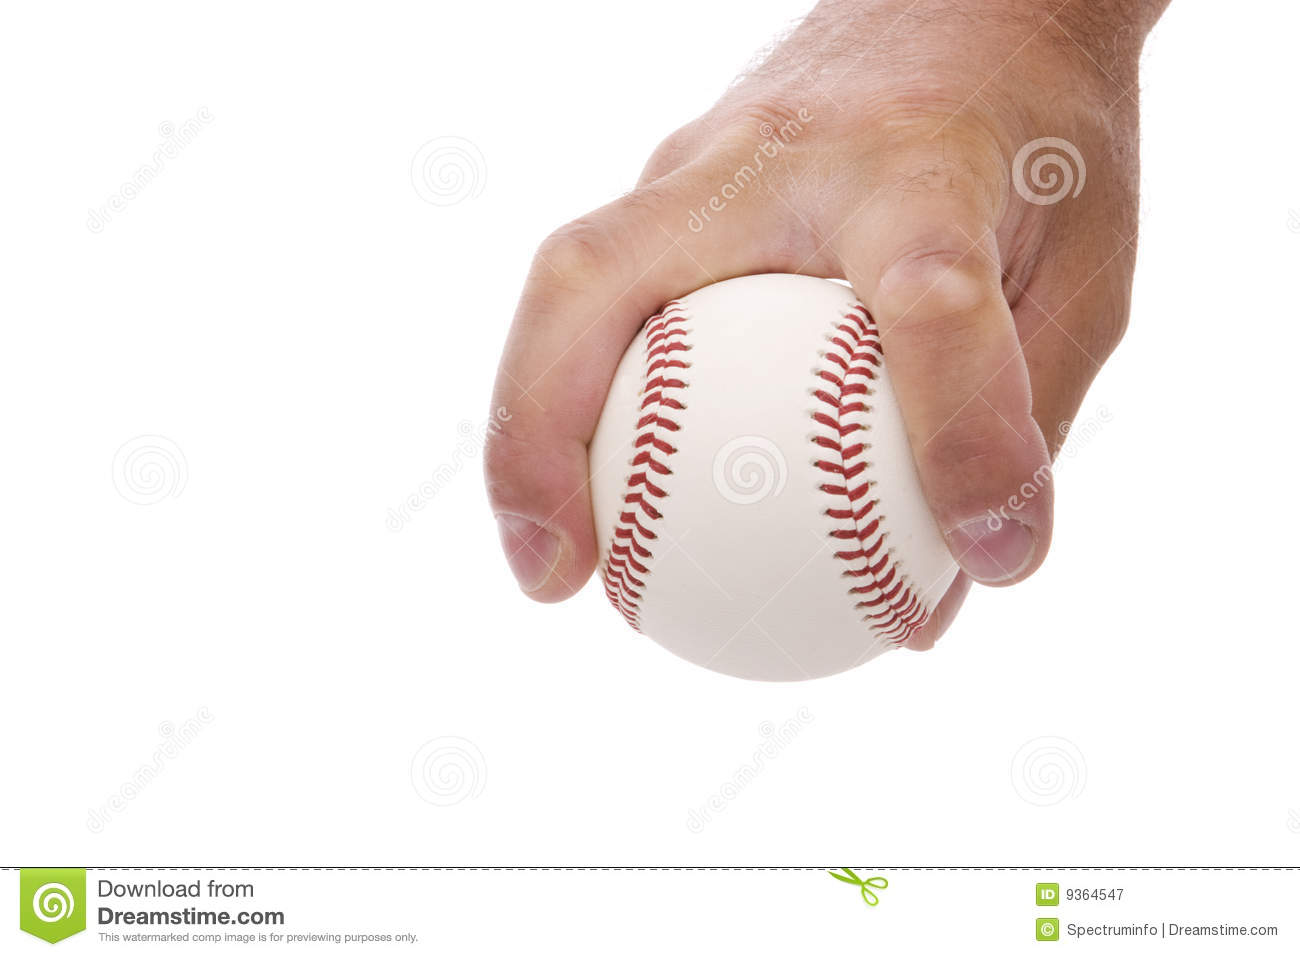 How to Grip a Fastball